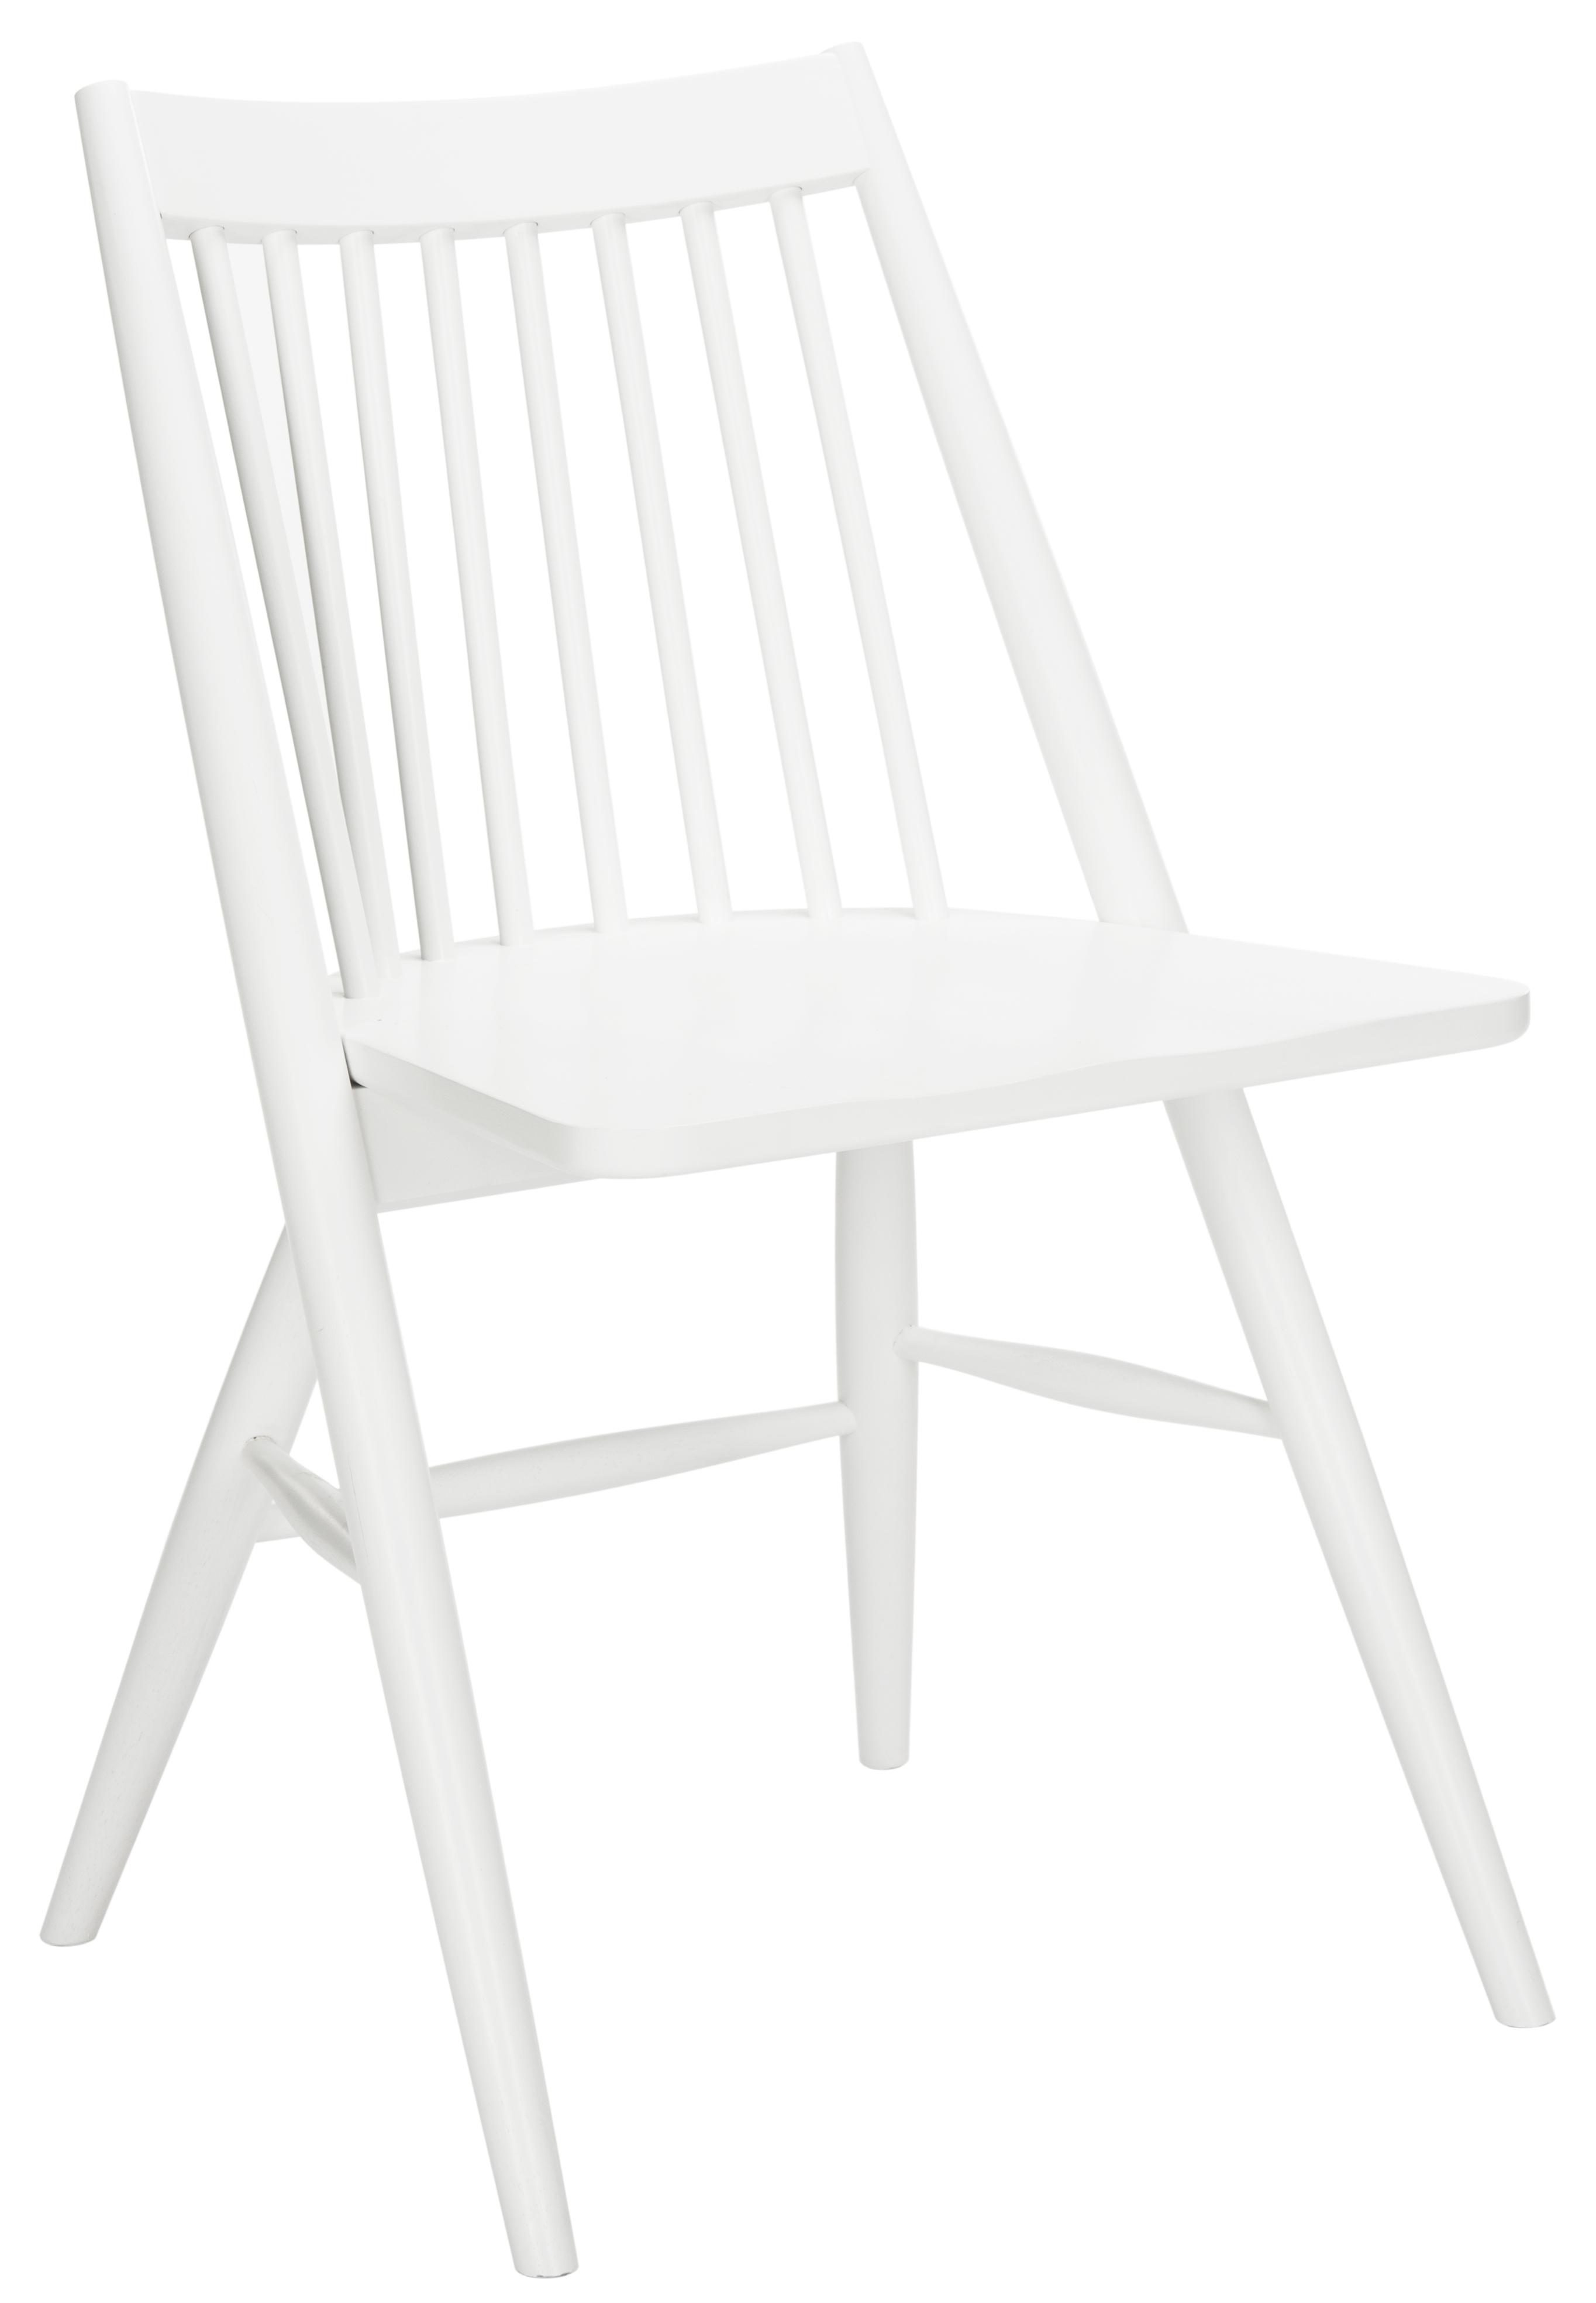 Ames Chairs, Set of 2, White